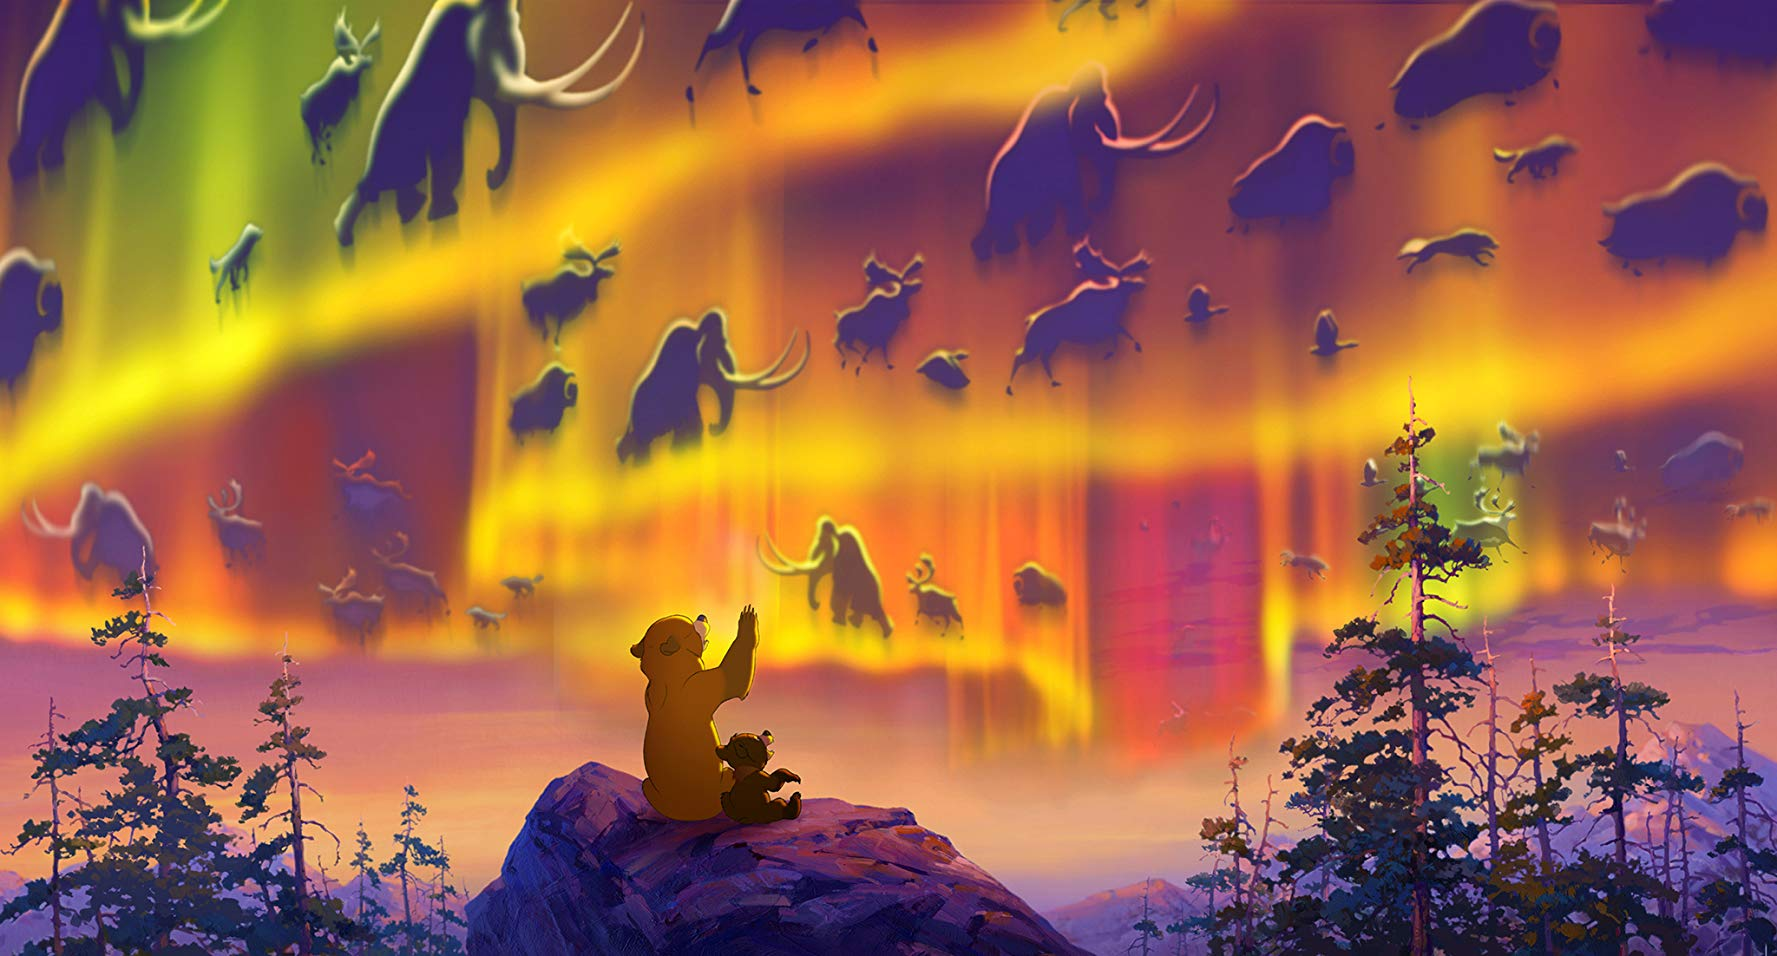 Kenai and Koda watch the aurora borealis in Brother Bear (2003)